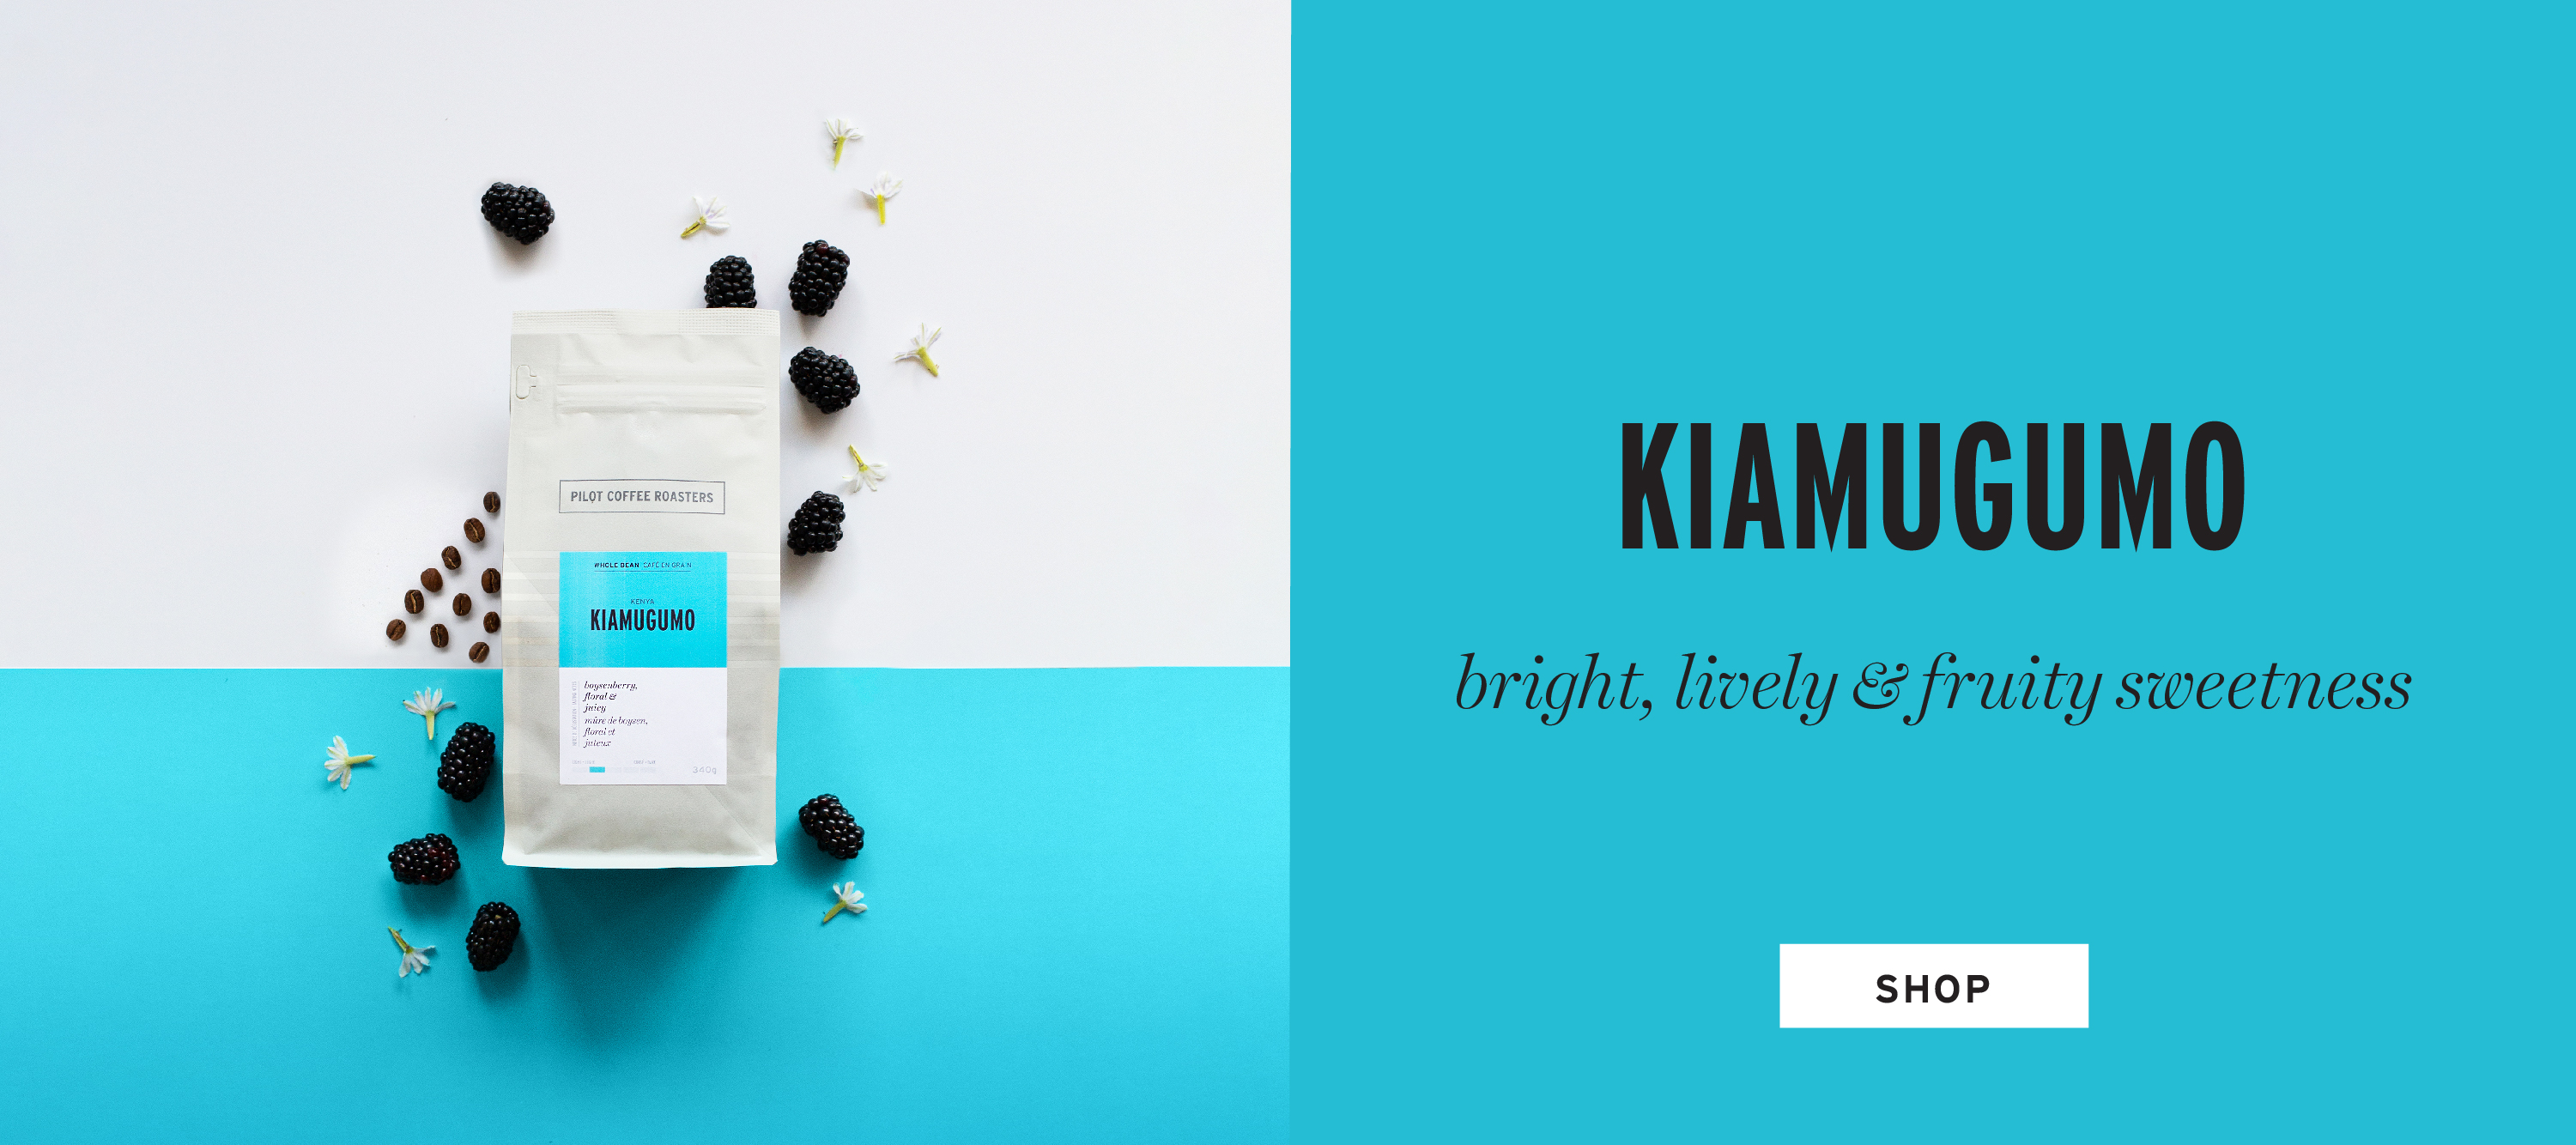 Kiamugumo from Africa. A classic Kenyan coffee that is bright and lively with nuanced fruity sweetness. SHOP NOW!